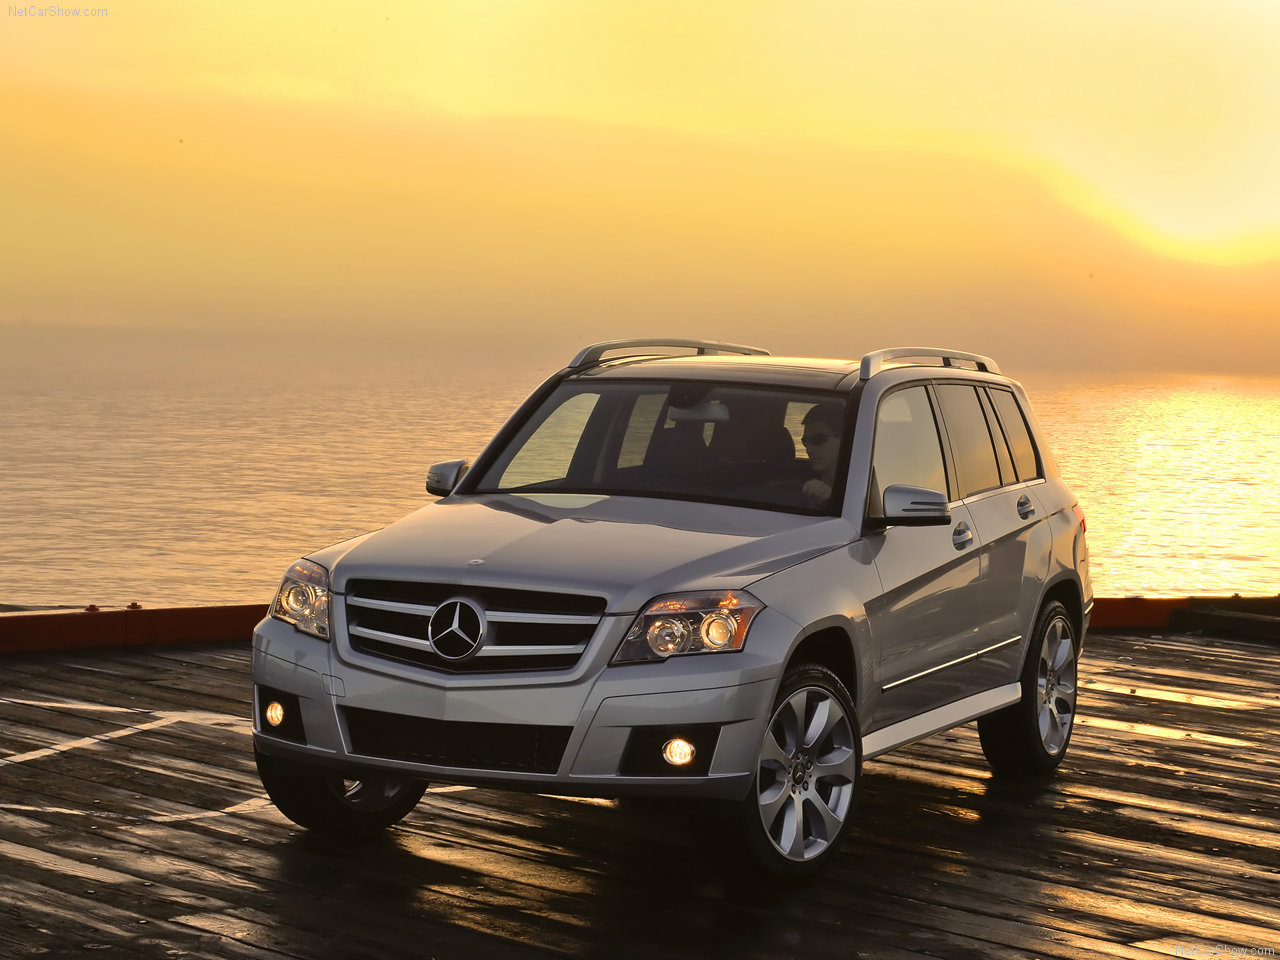 2010 mercedes benz glk 350 4matic mercedes benz cars for Mercedes benz glk350 2010